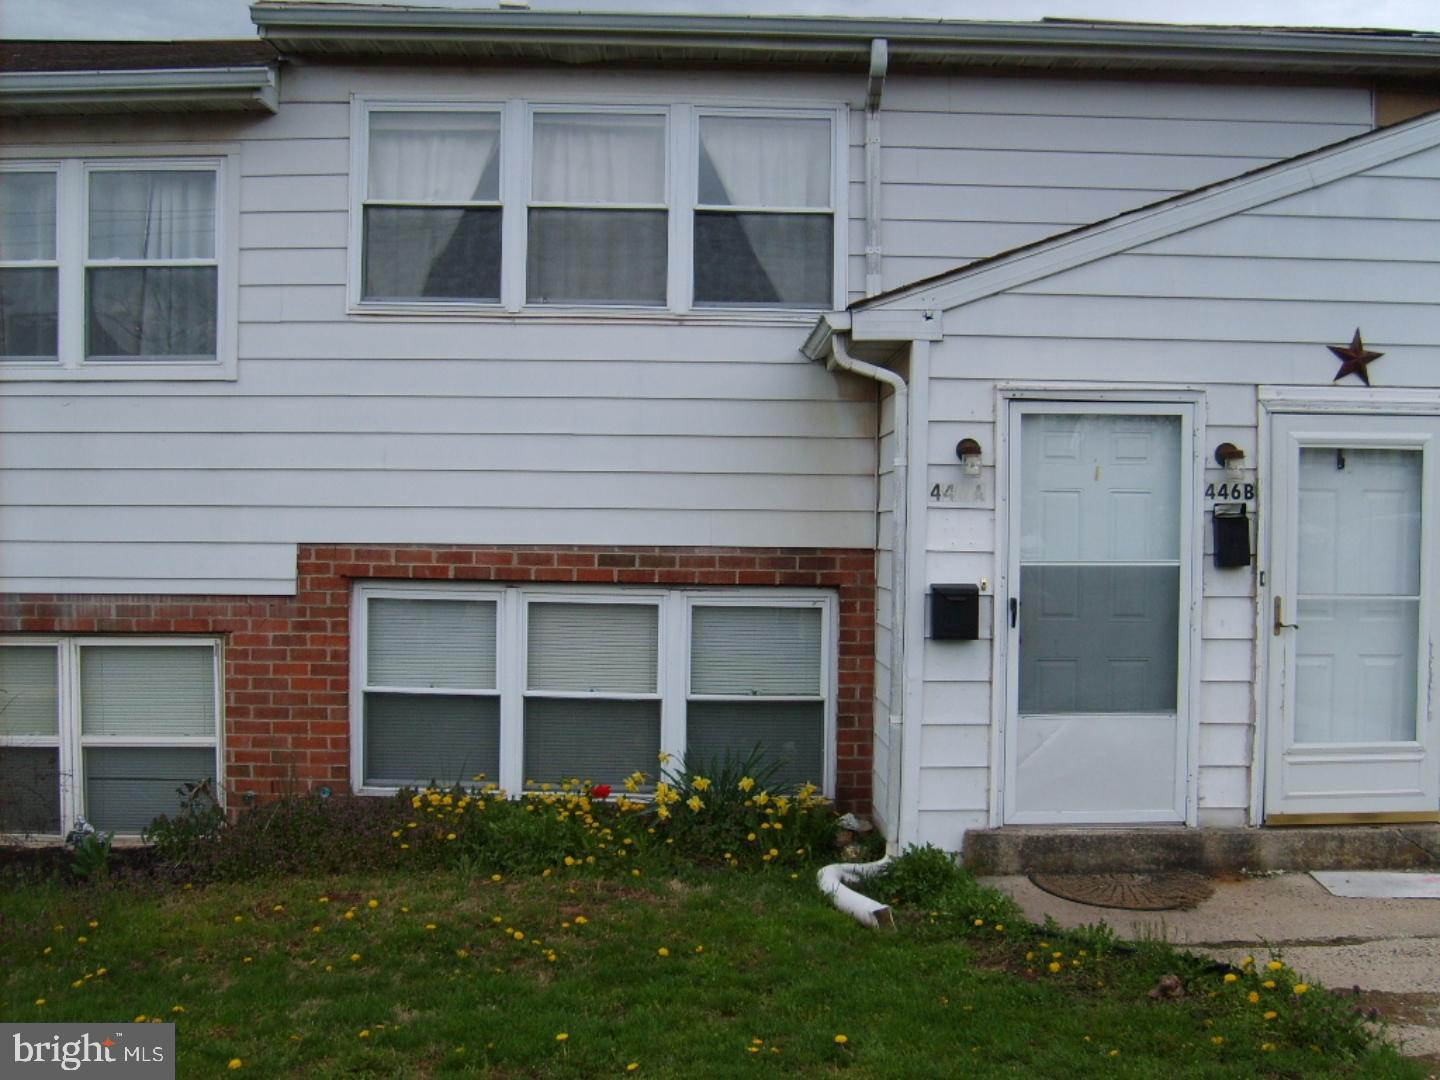 446 STATE STREET, EAST GREENVILLE, PA 18041